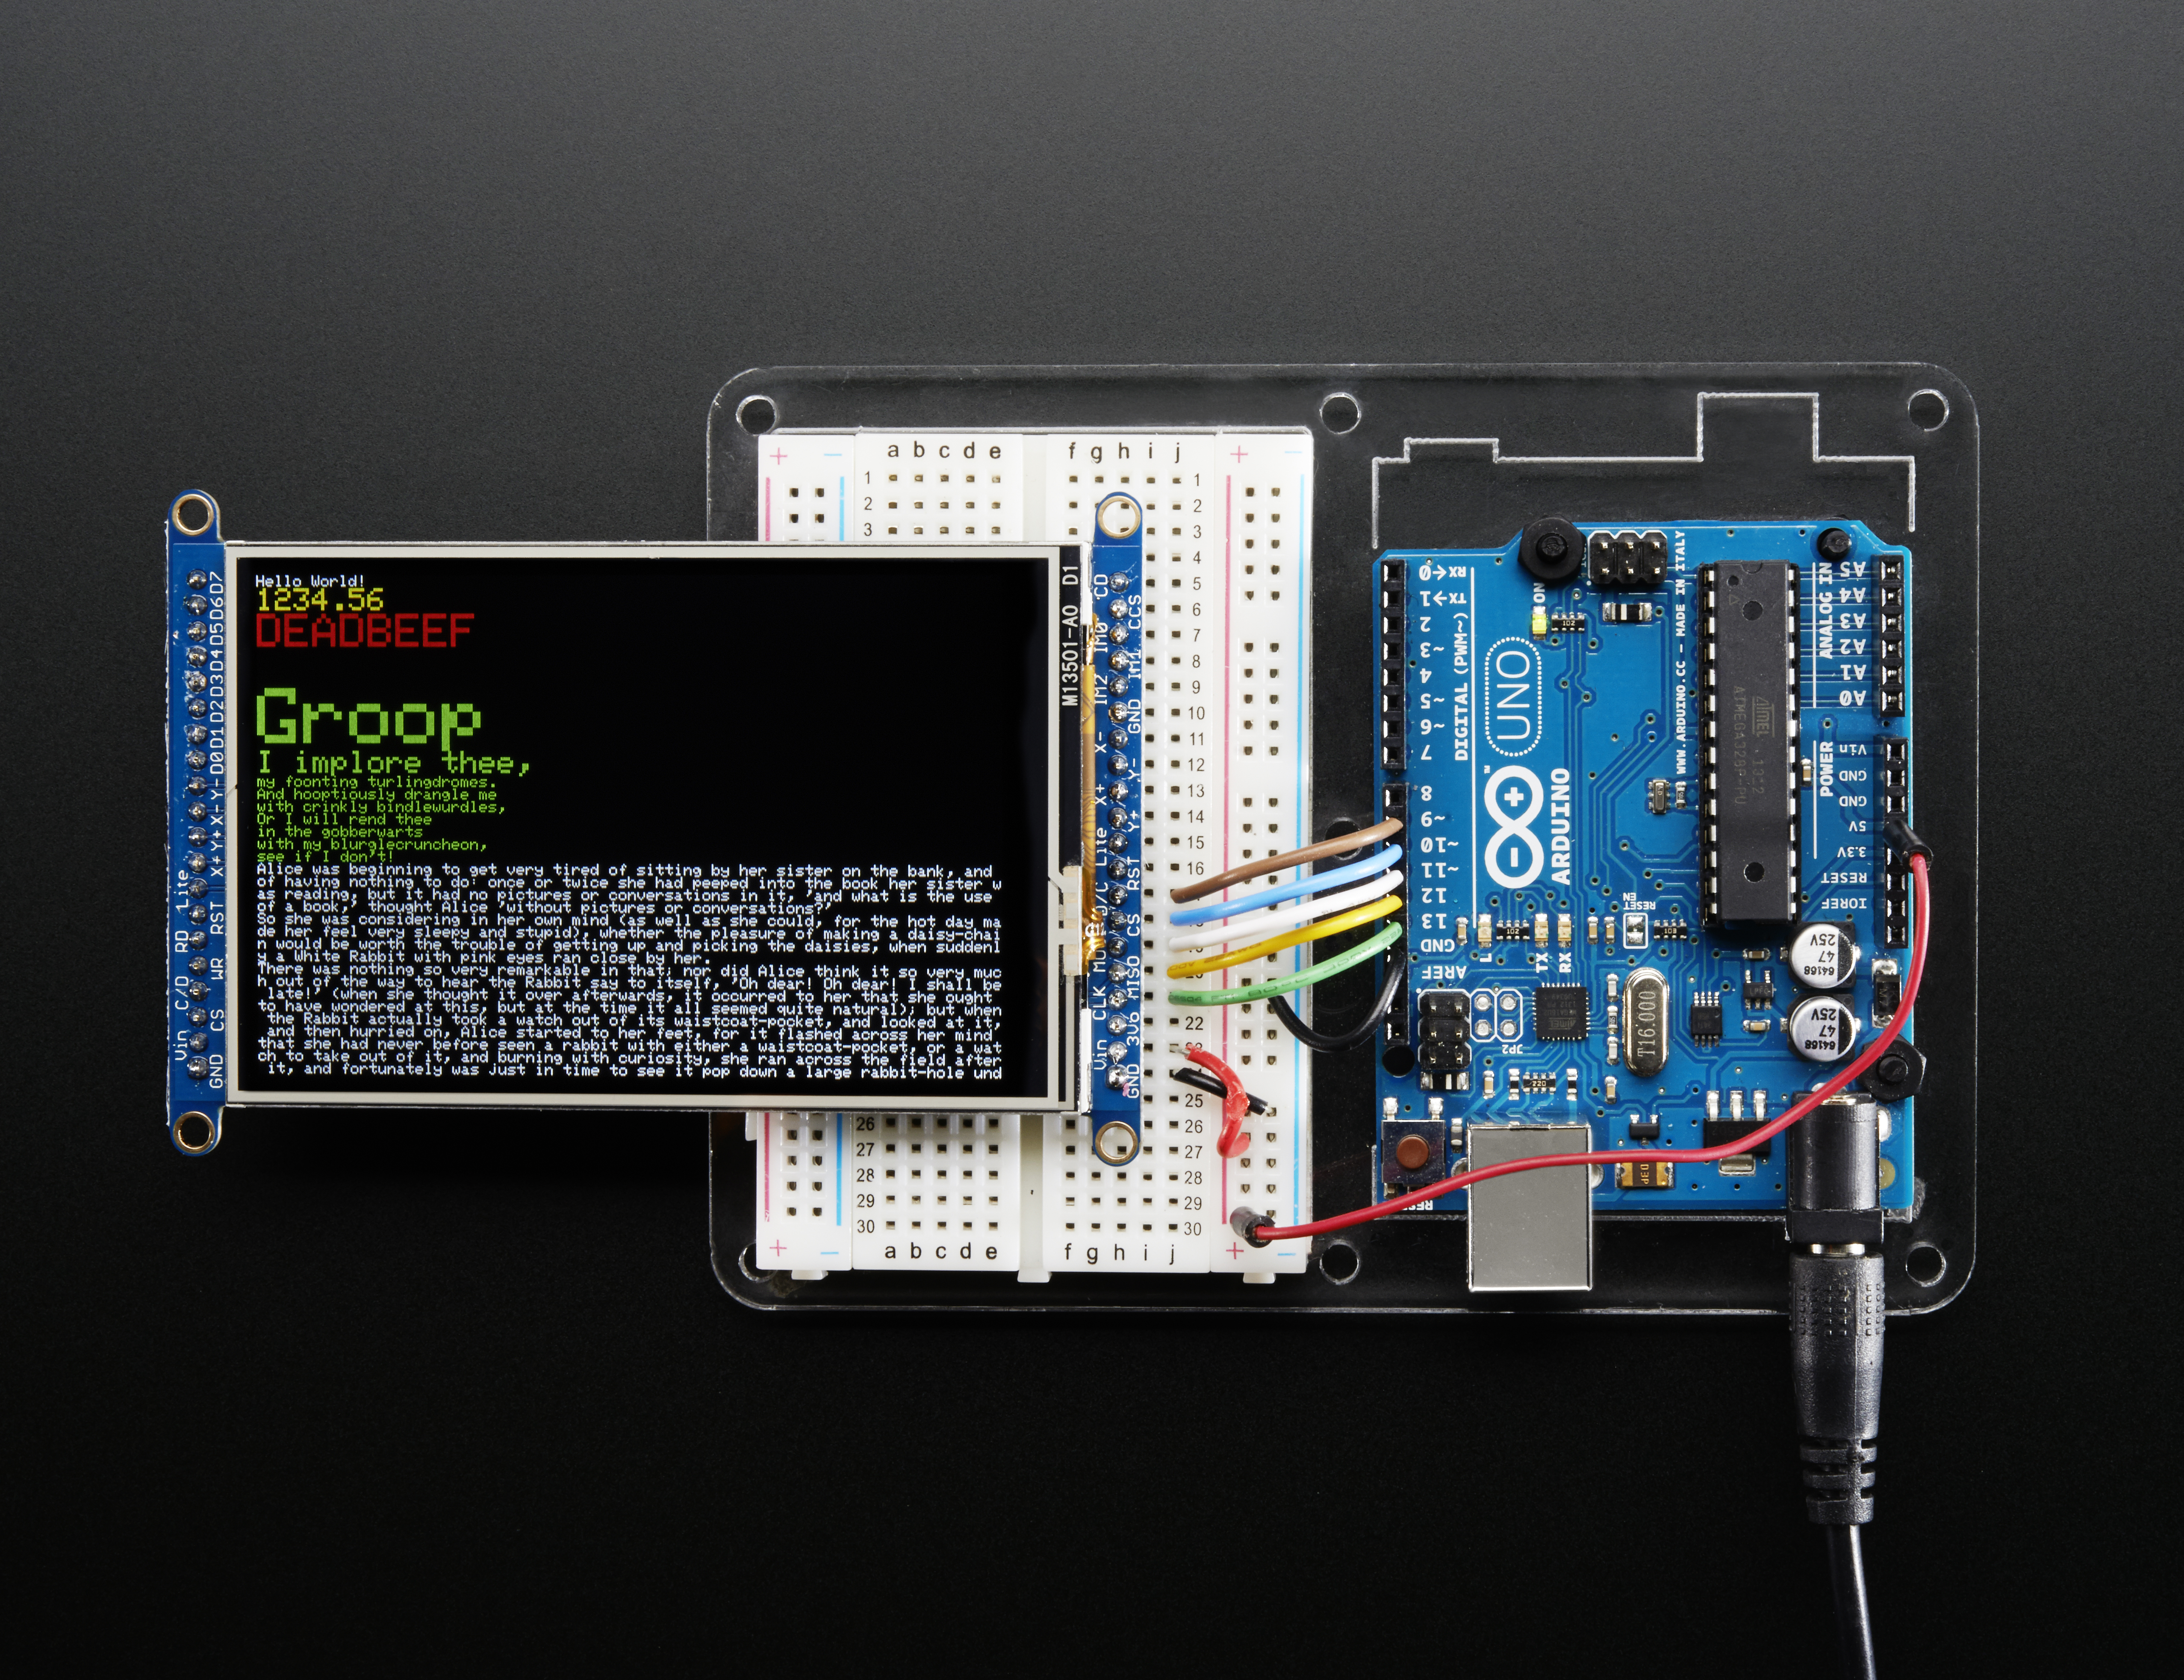 adafruit_products_2050_top_demo_alt_01_ORIG.jpg